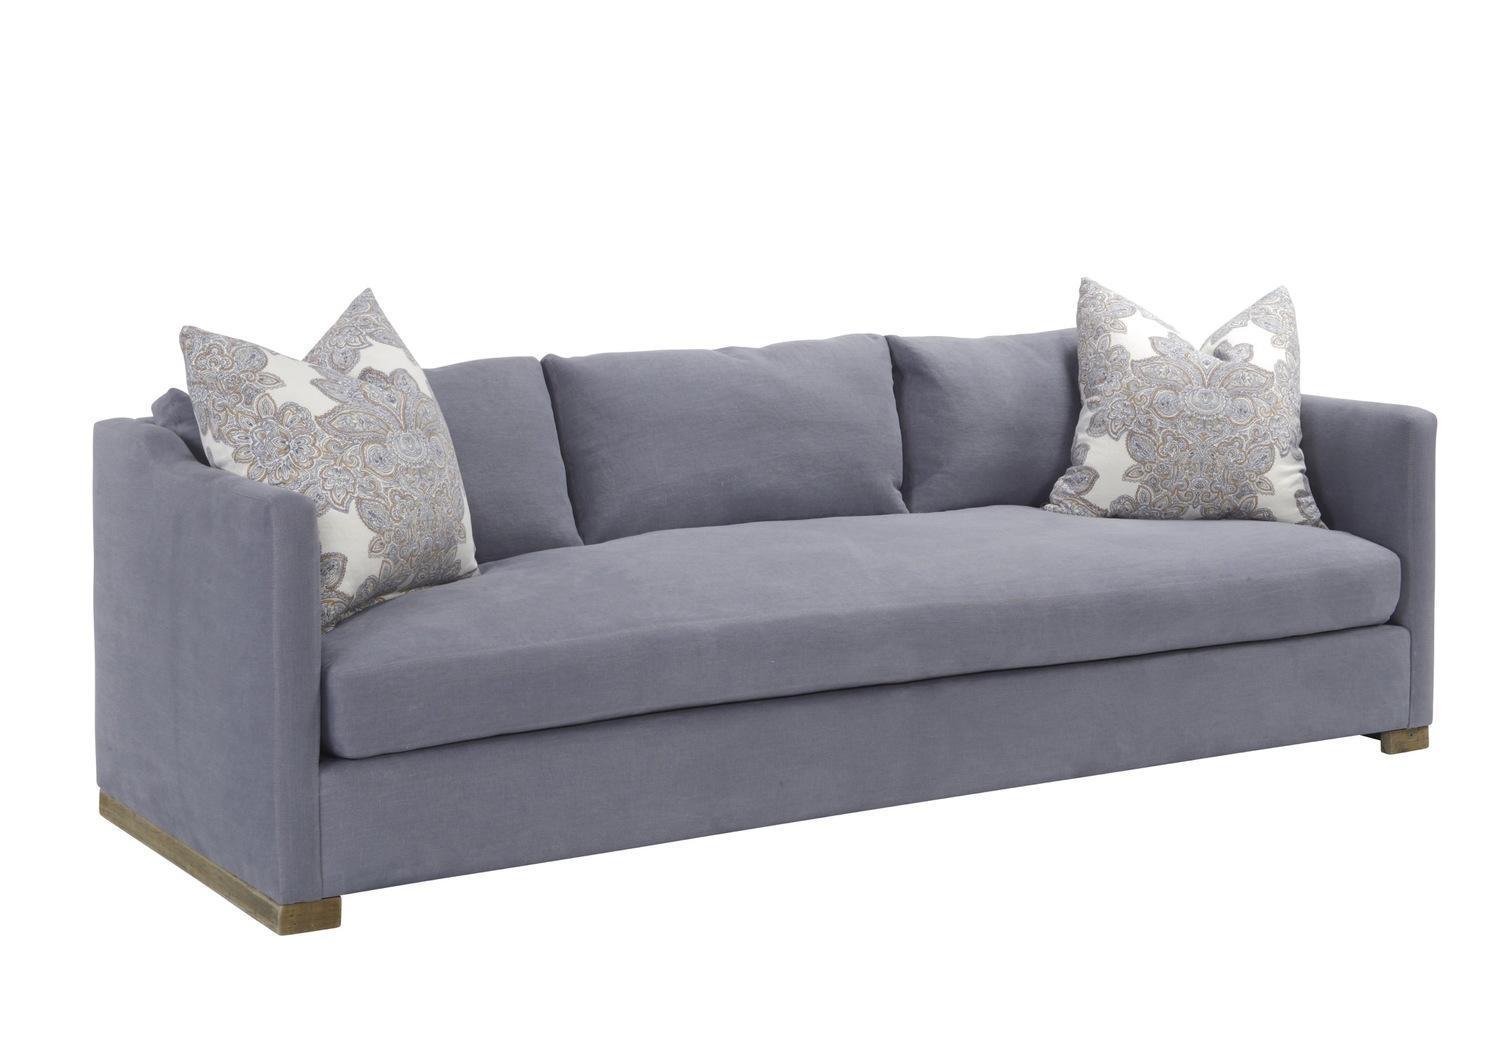 Sofas: Carlyle Sofa | Custom Sofa Nyc | Carlyle Sofa Inside Custom Sofas Nyc (Image 13 of 20)